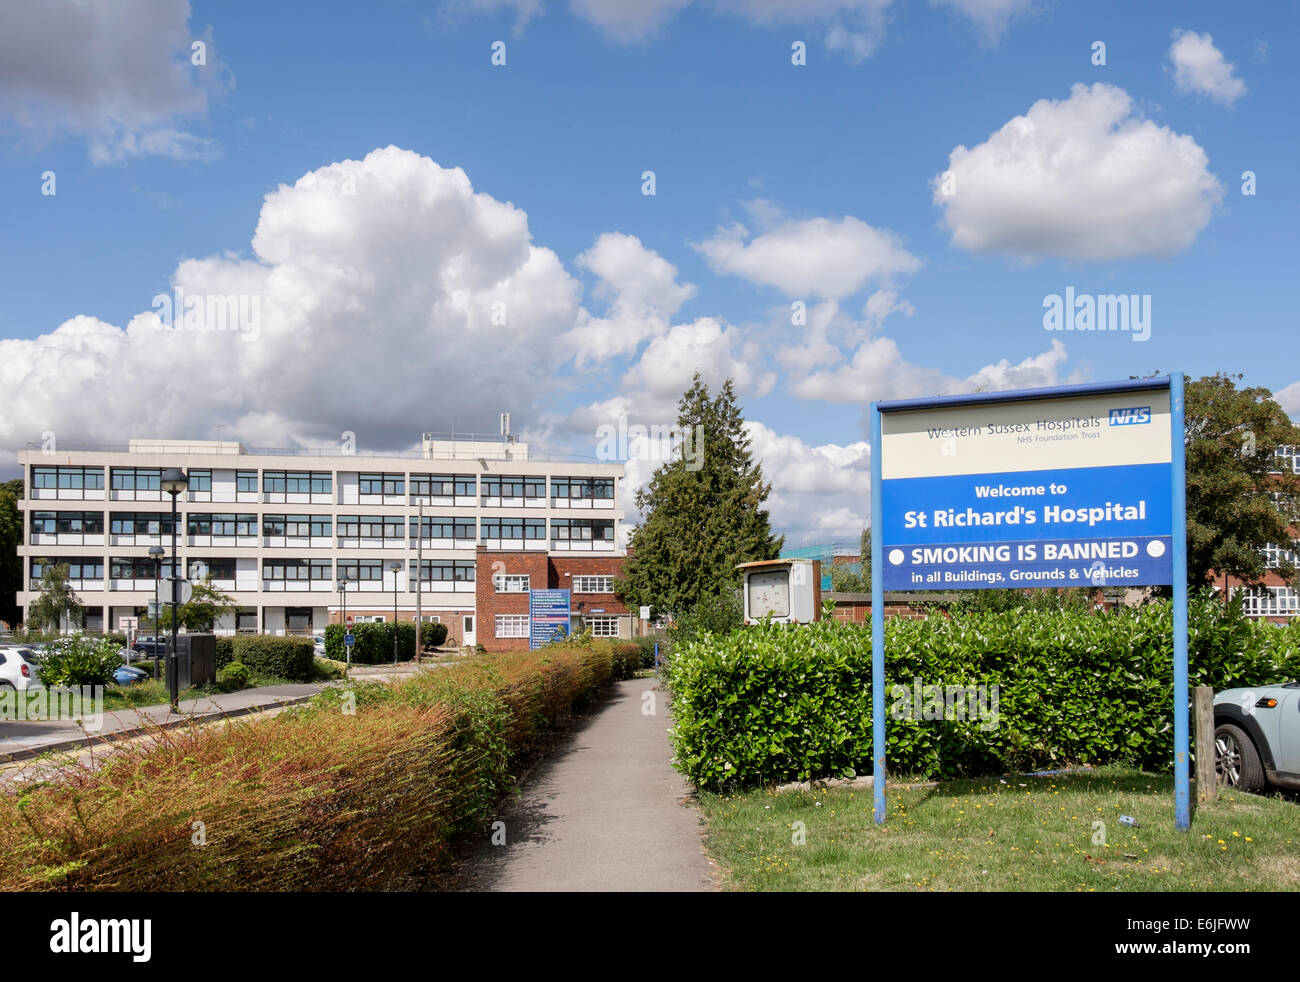 Sign at entrance to St Richard's Hospital warning 'Smoking is banned' in grounds and buildings Chichester - Stock Image